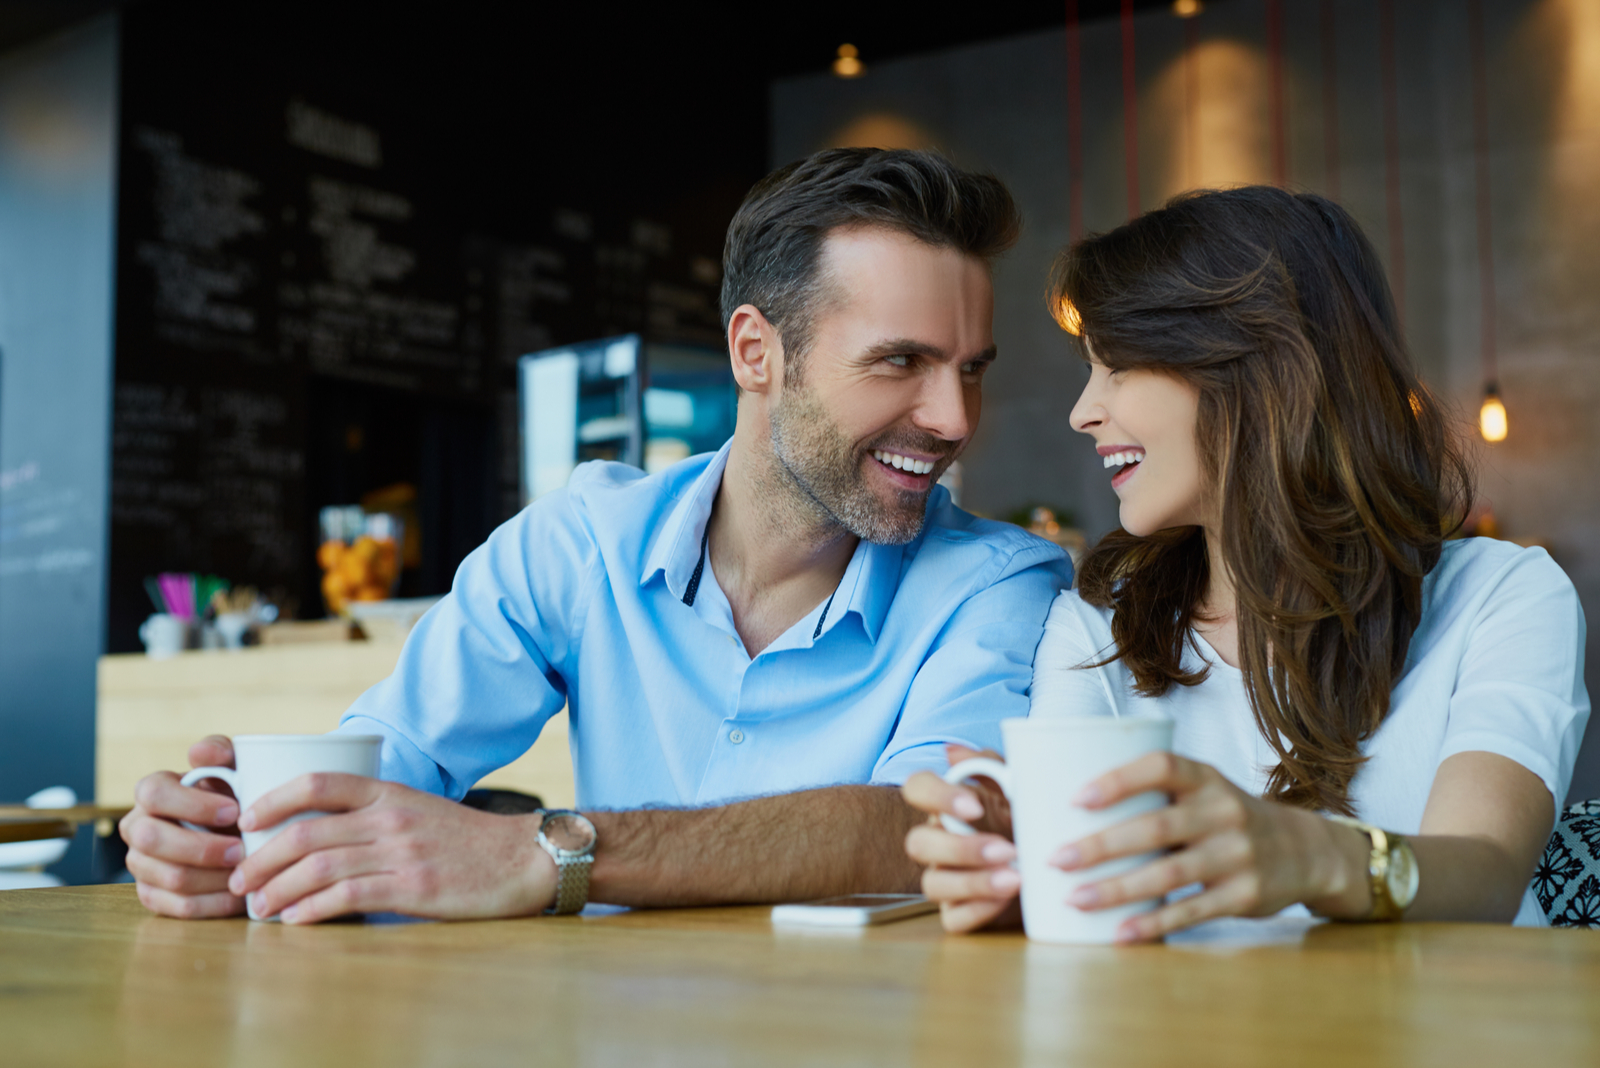 a smiling man and woman sit at a table and talk